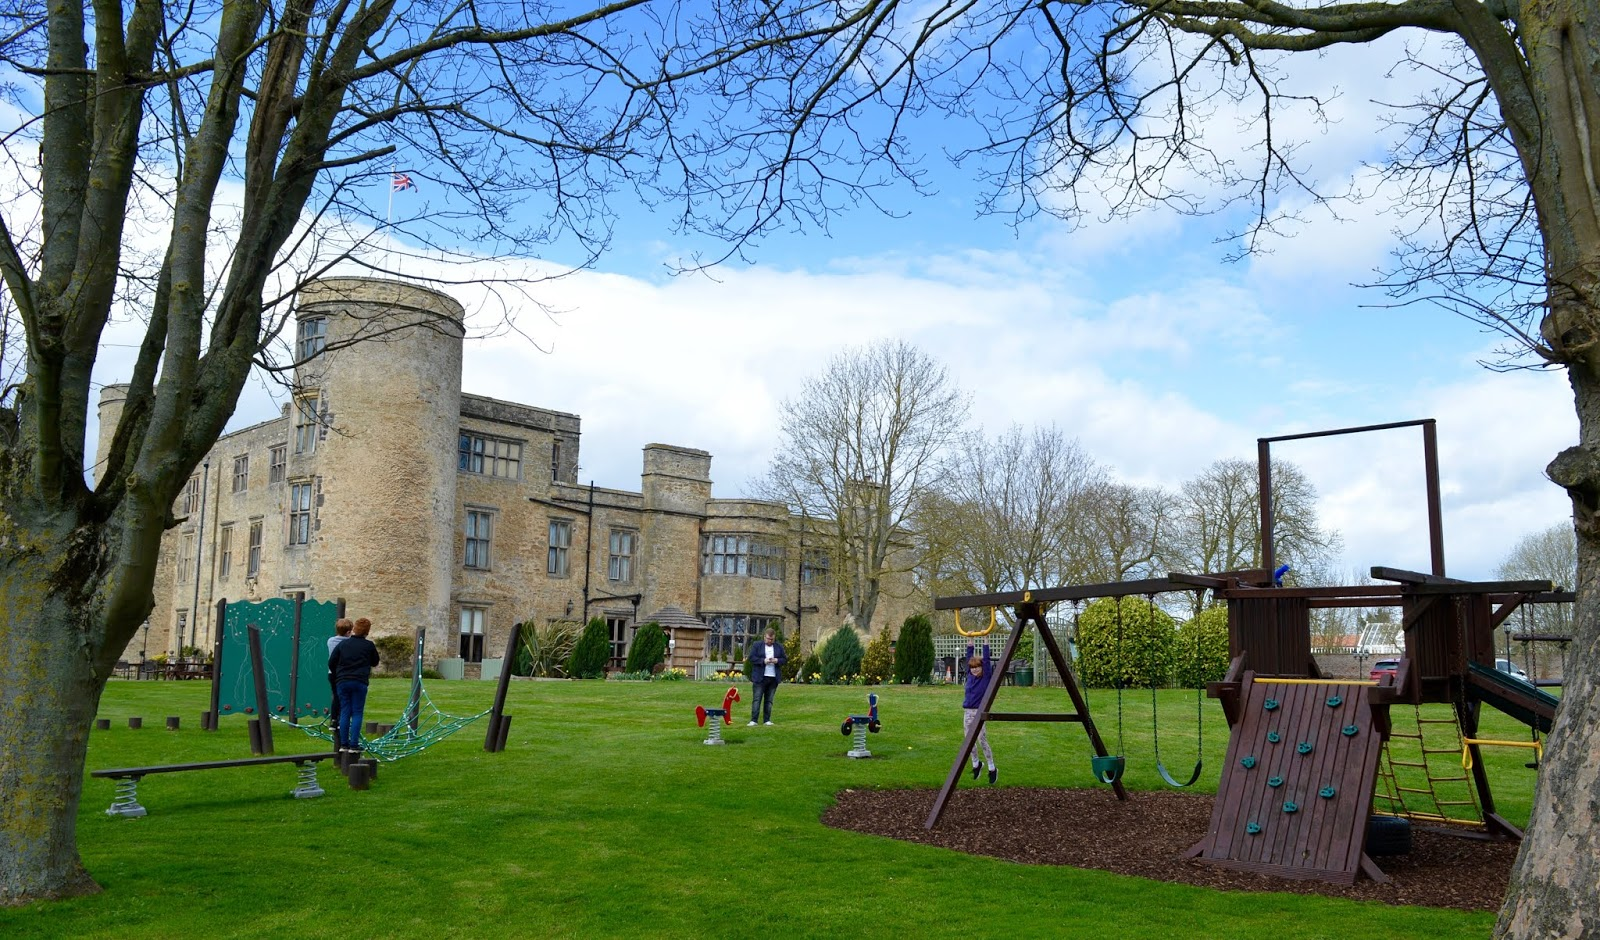 Sunday Lunch, Playgrounds & Birds of Prey at Walworth Castle, Darlington  - castle and park exterior